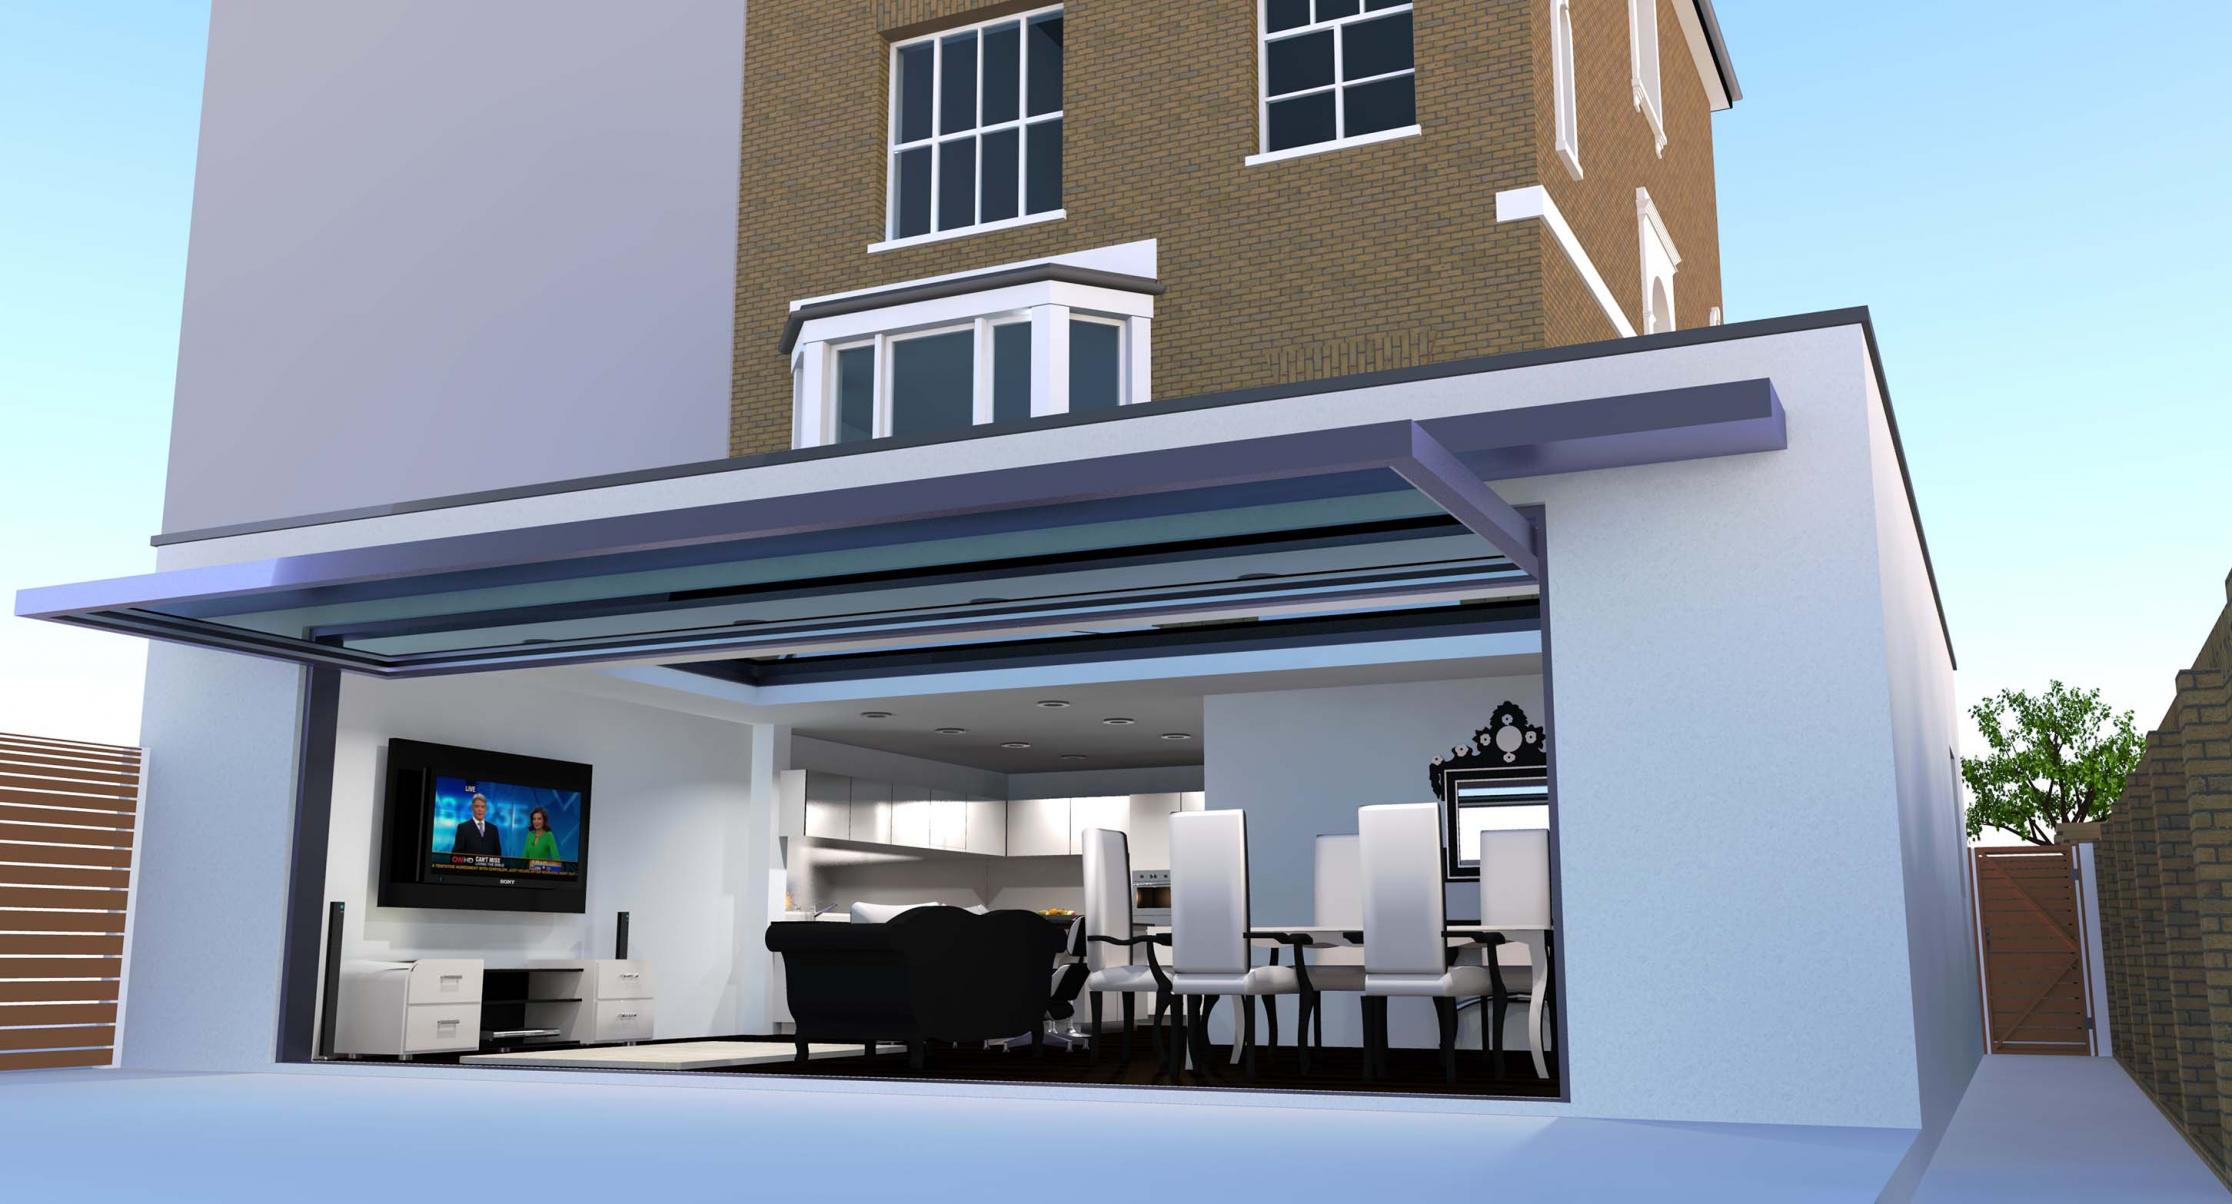 Rear ext garage door residential 3d models by the art for Garage extension cost estimate